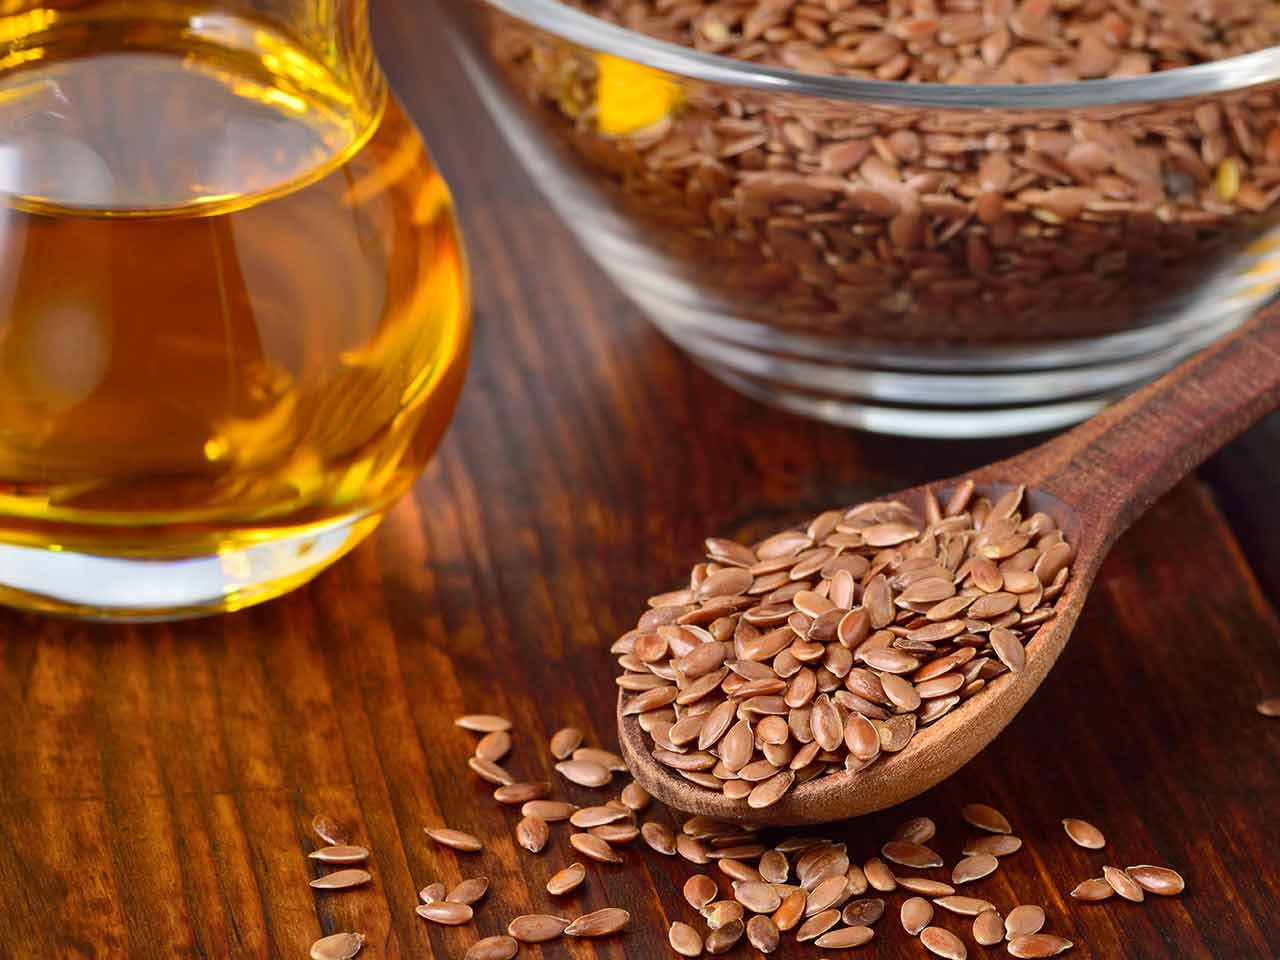 Whole flax seeds and flax seed oil